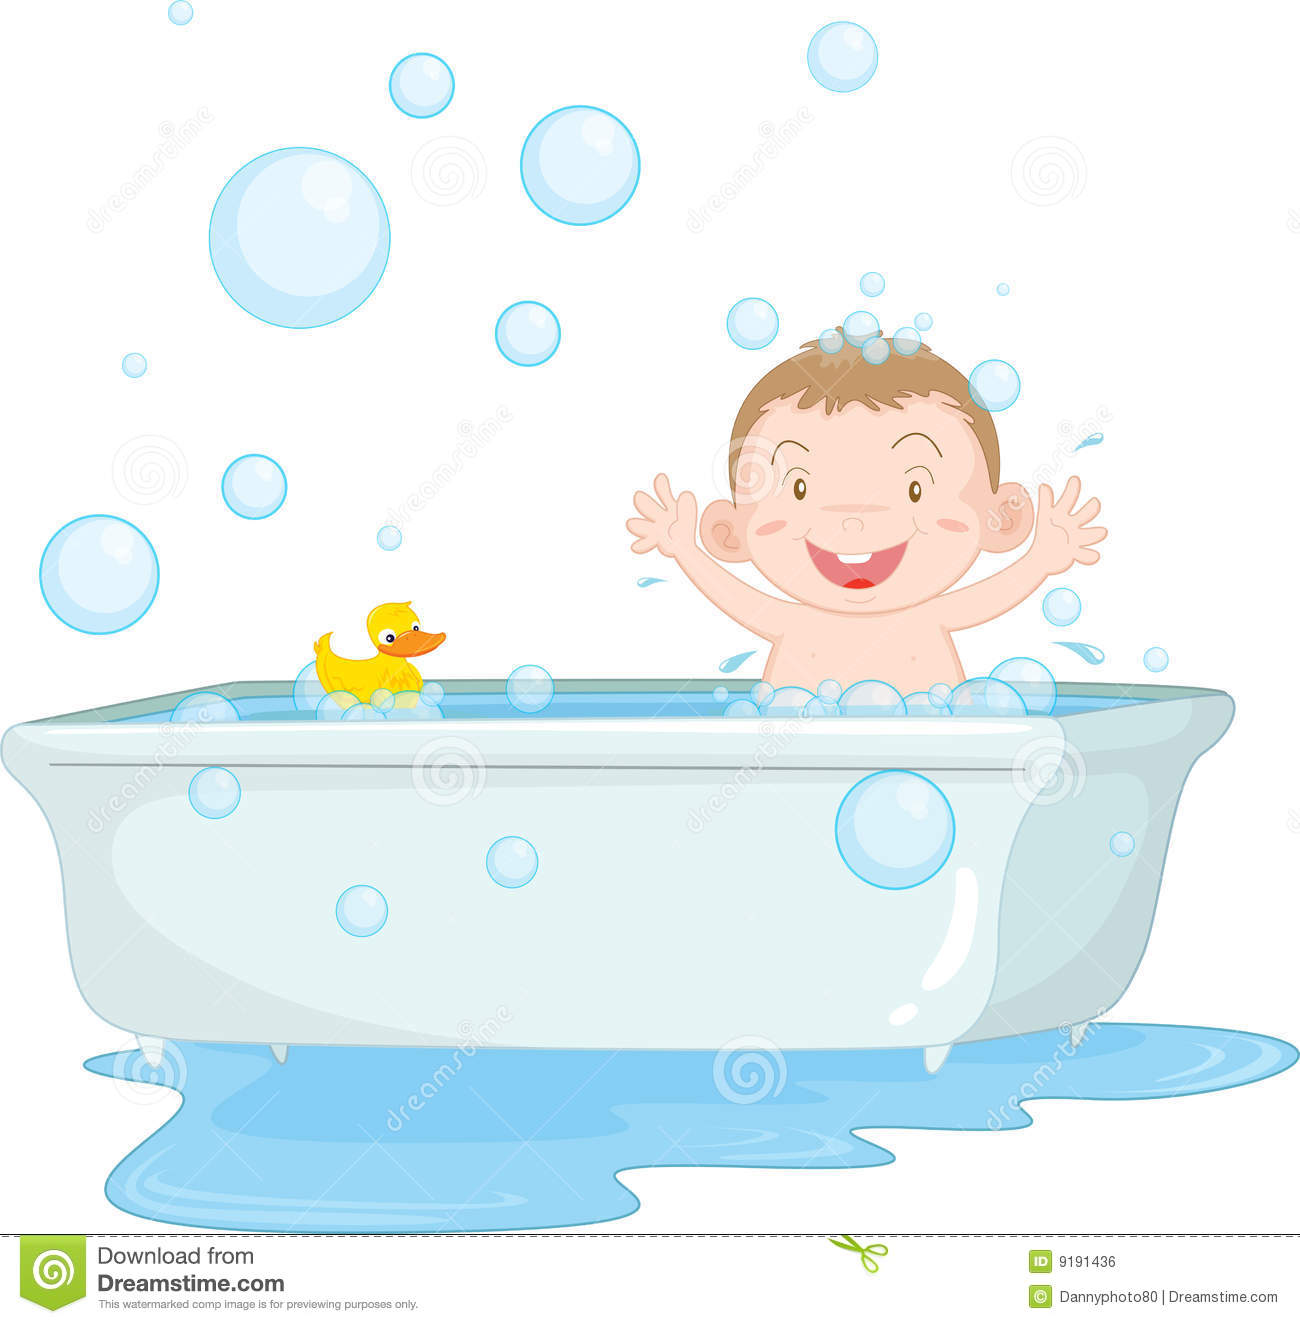 Baby bath Illustrations and Clip Art. 193 baby bath royalty free ...